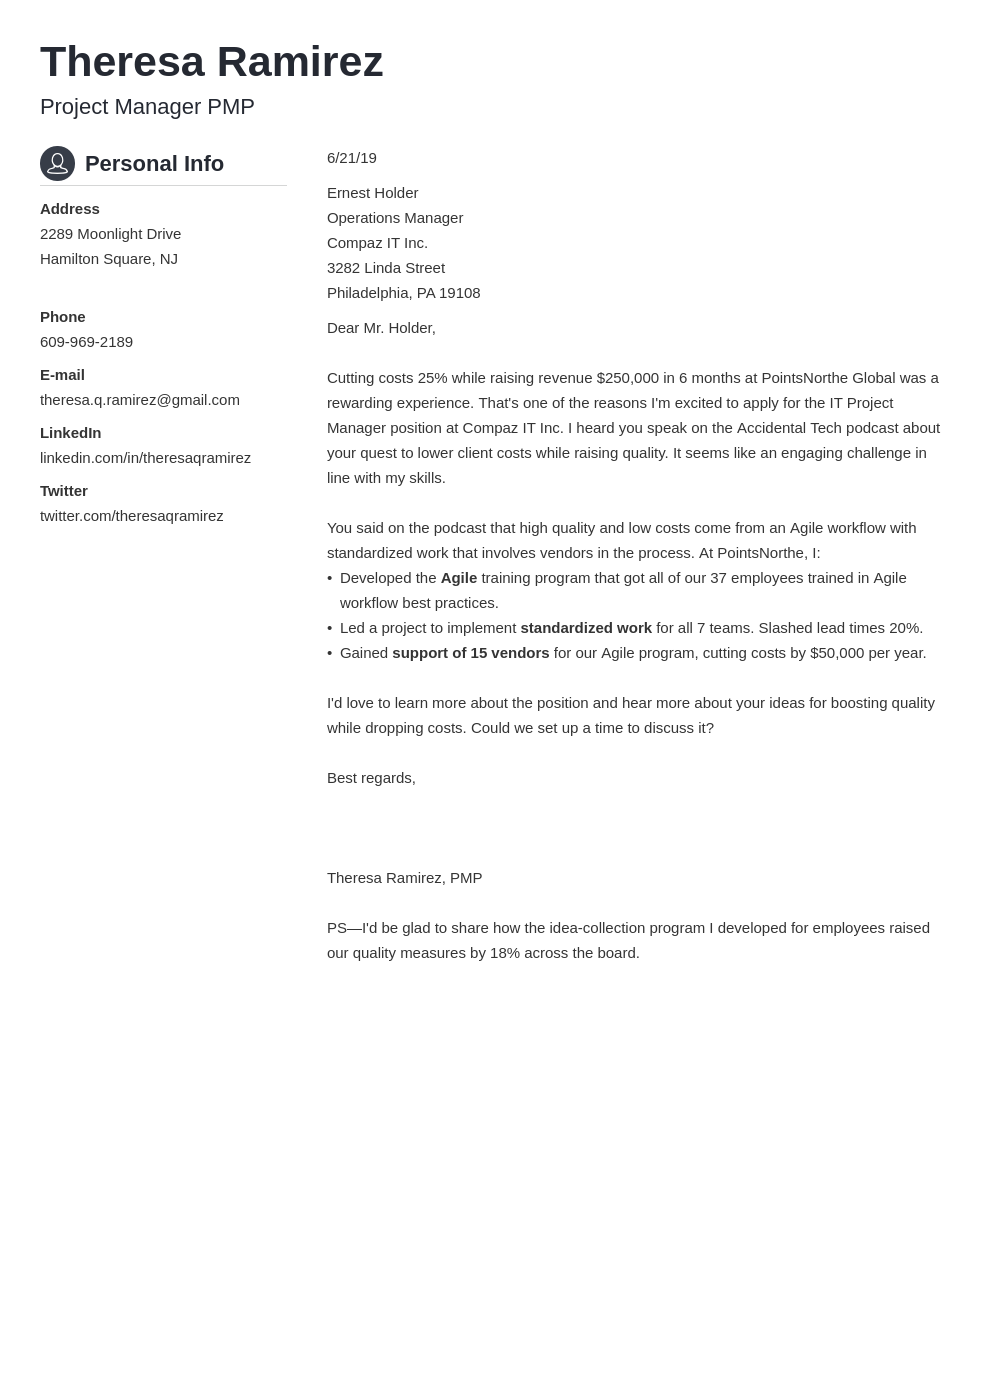 Cover Letter Spacing Margins Double Space Or Not